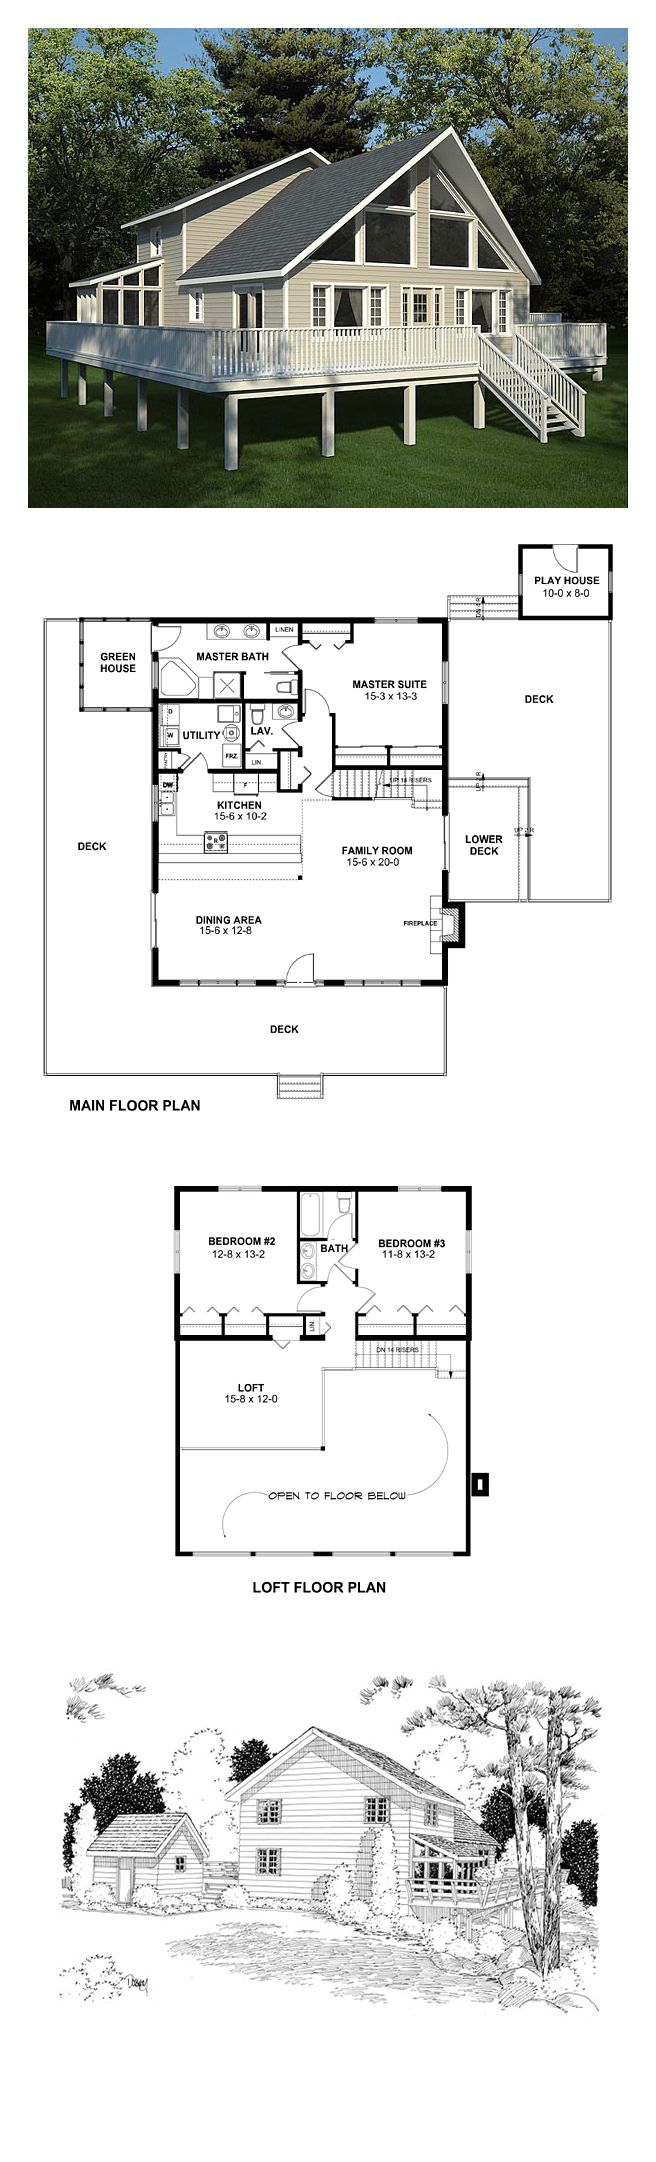 Contemporary House Plan 10515 | Total Living Area: 2044 sq. ft., 3 bedrooms & 2.5 bathrooms. The dining and family rooms are completely open to each other, perfect for hanging out in the warmth of the hearth. #houseplan #contemporarystyle